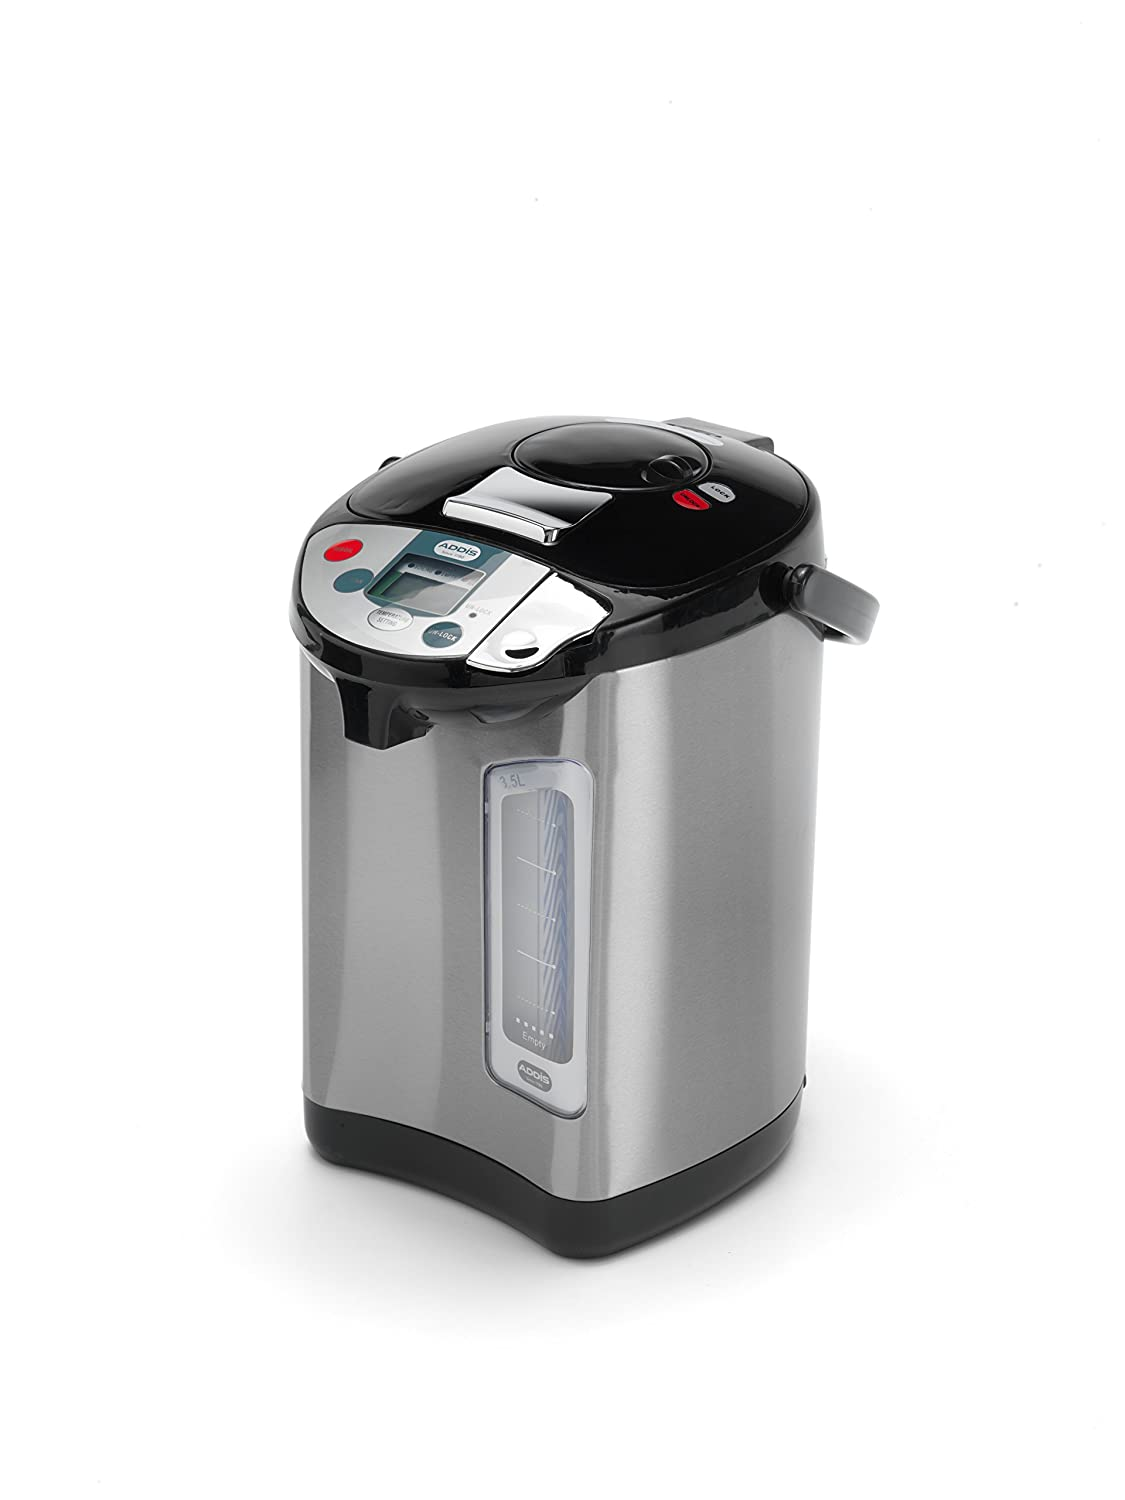 Addis Thermo Pot Instant Thermal Hot Water Boiler Dispenser, 3.5 liters, Stainless Steel/Black 128917